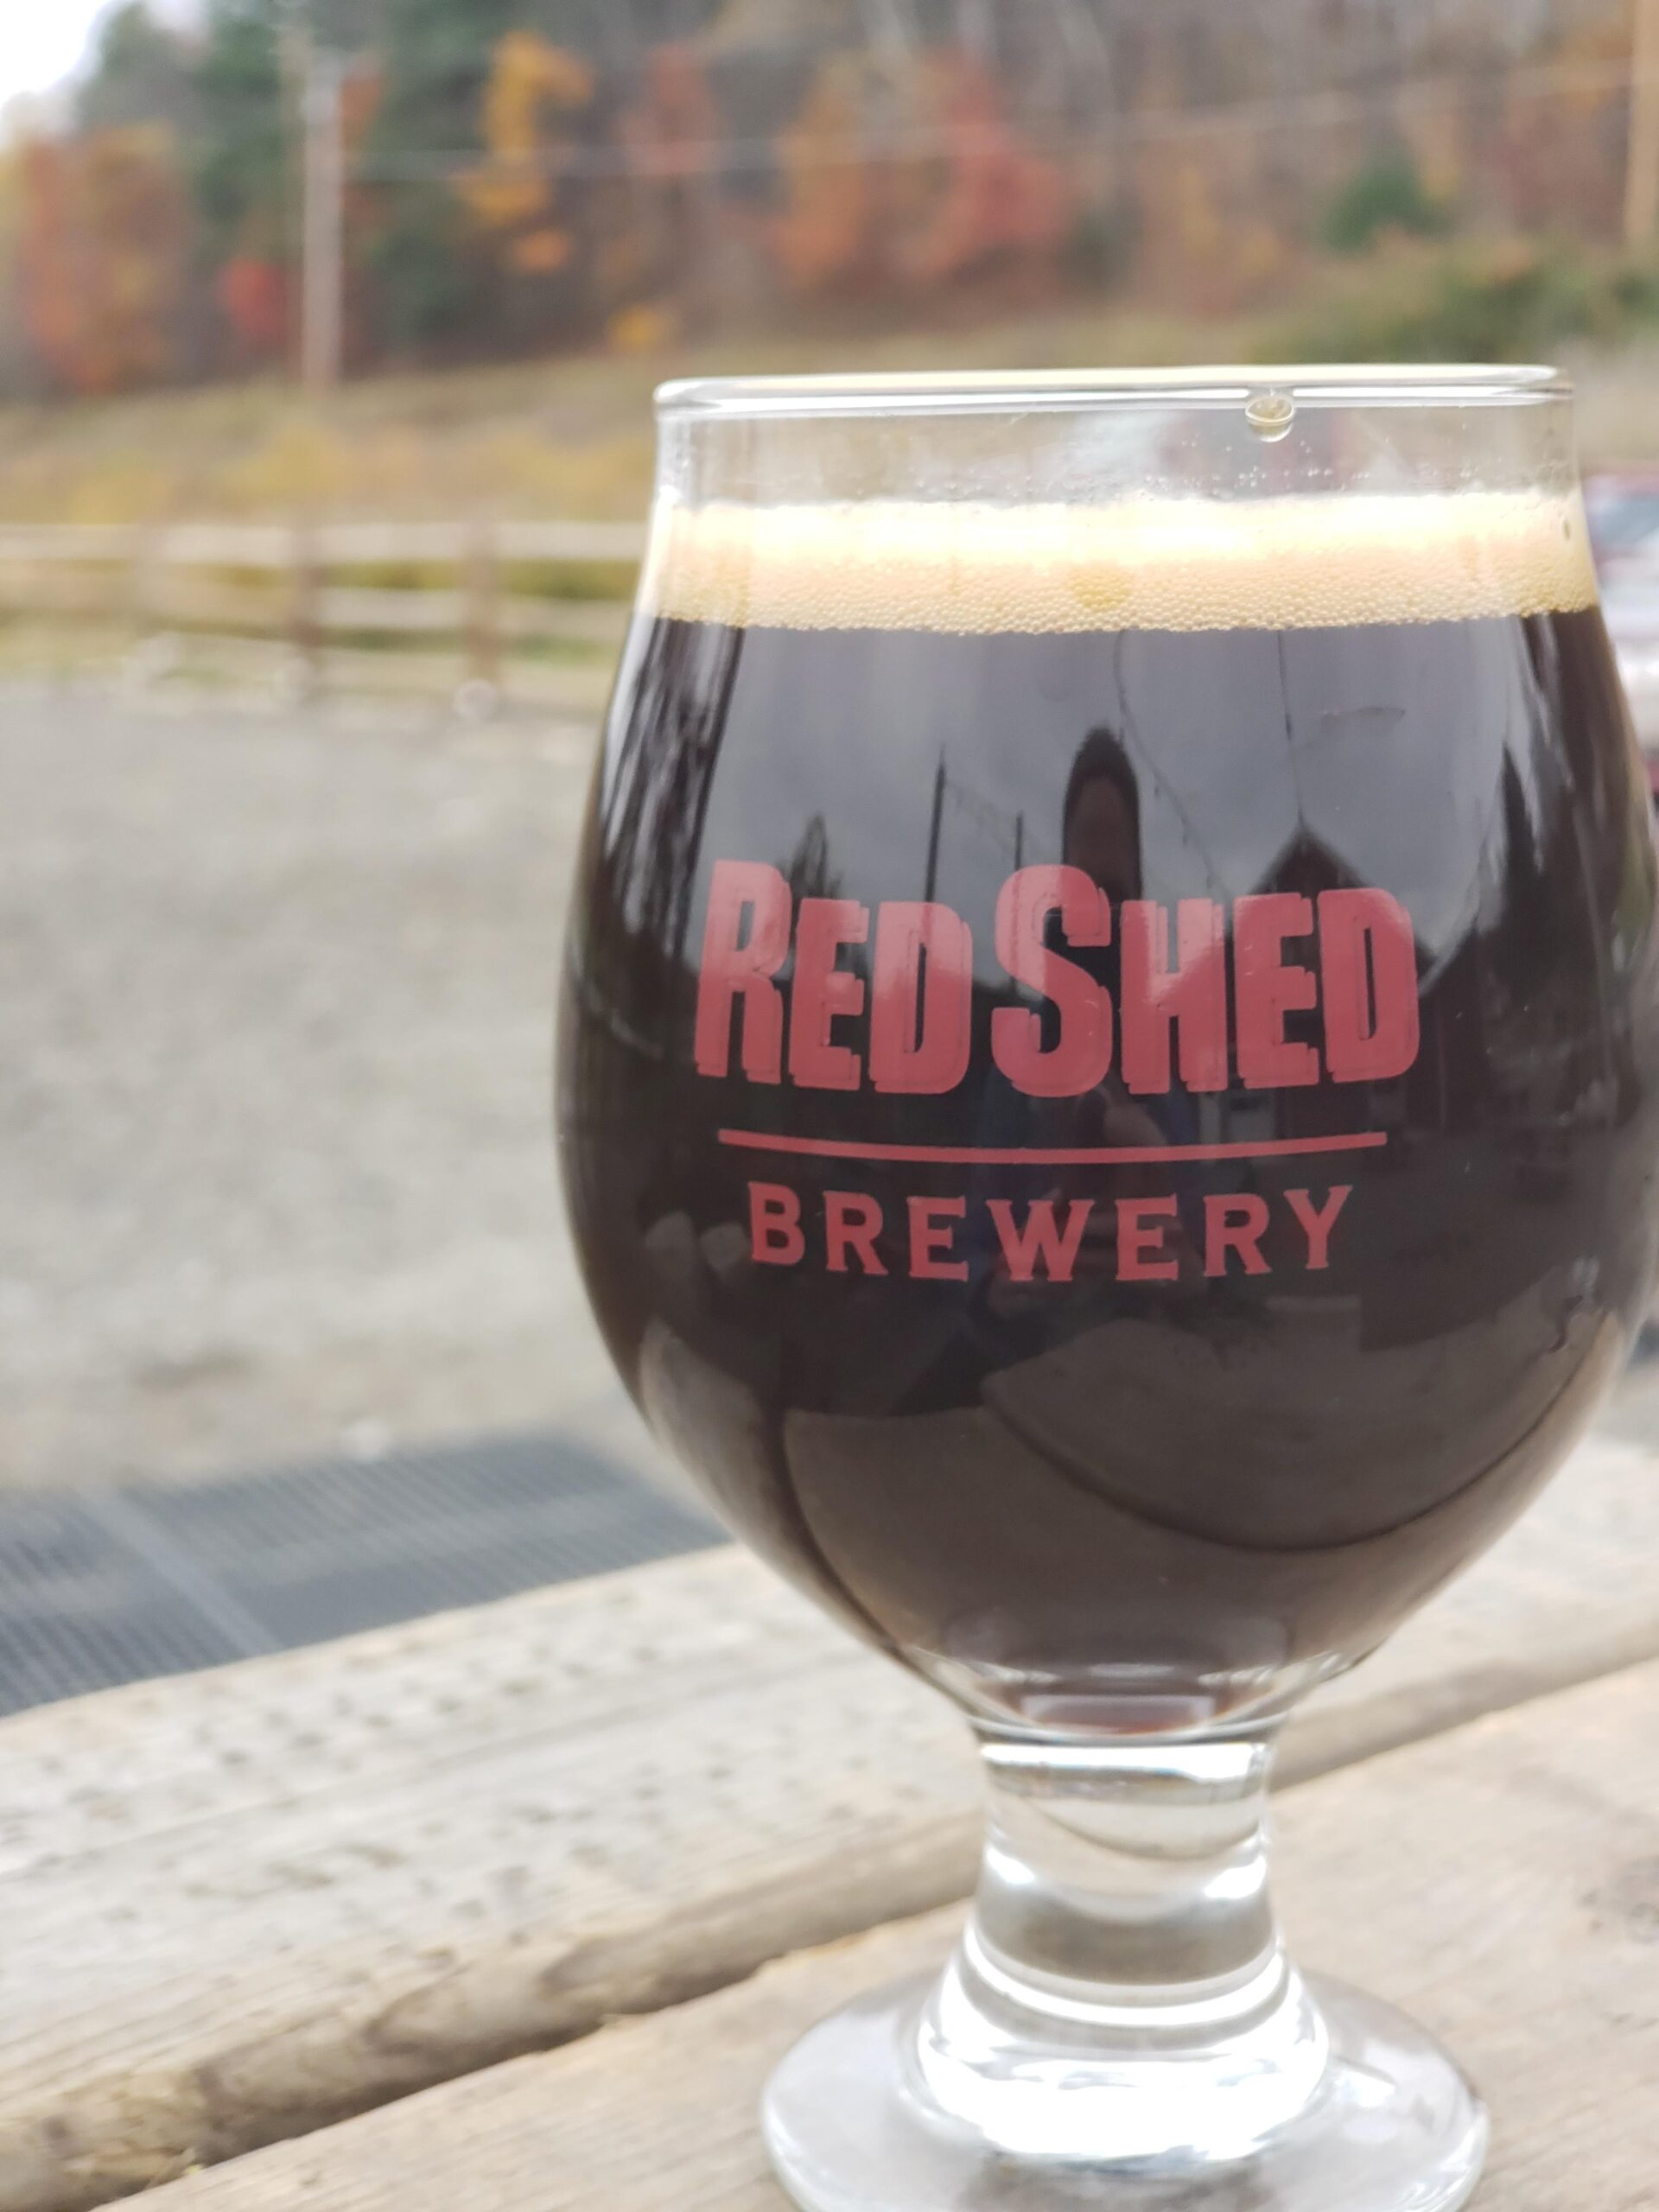 Chocolatier Stout, Red Shed Brewing